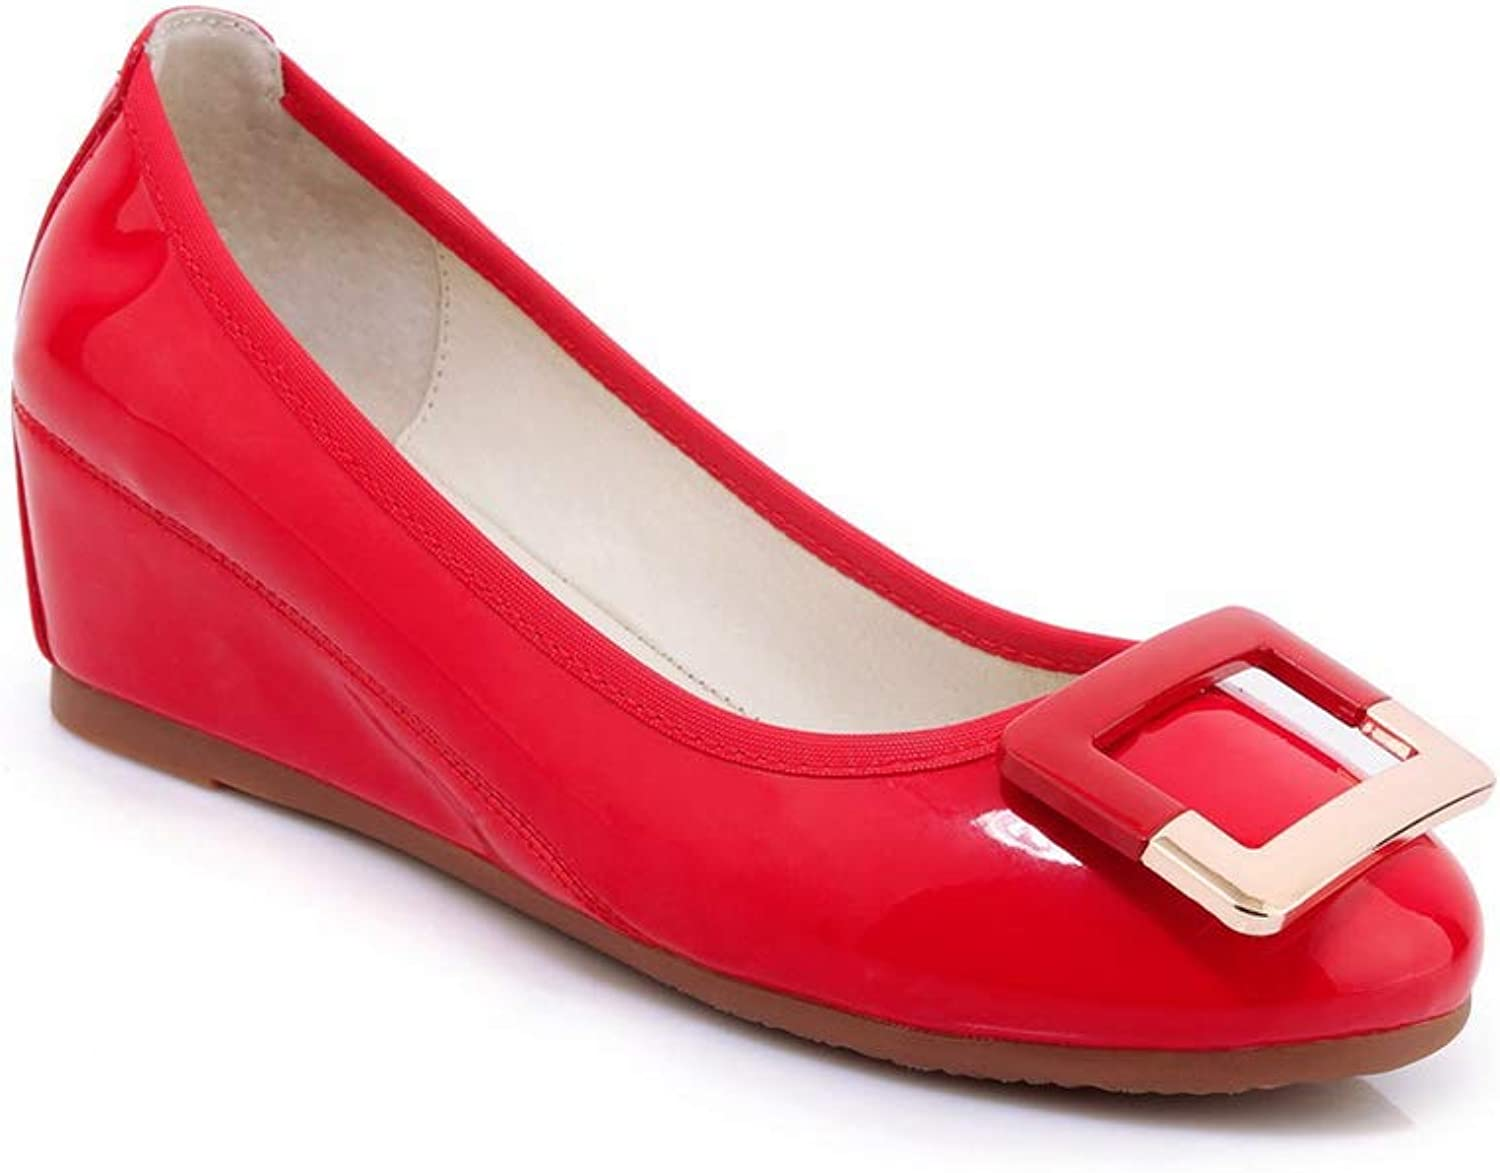 AN Womens Wedges Metal Buckles Patent-Leather Pumps shoes DGU00745